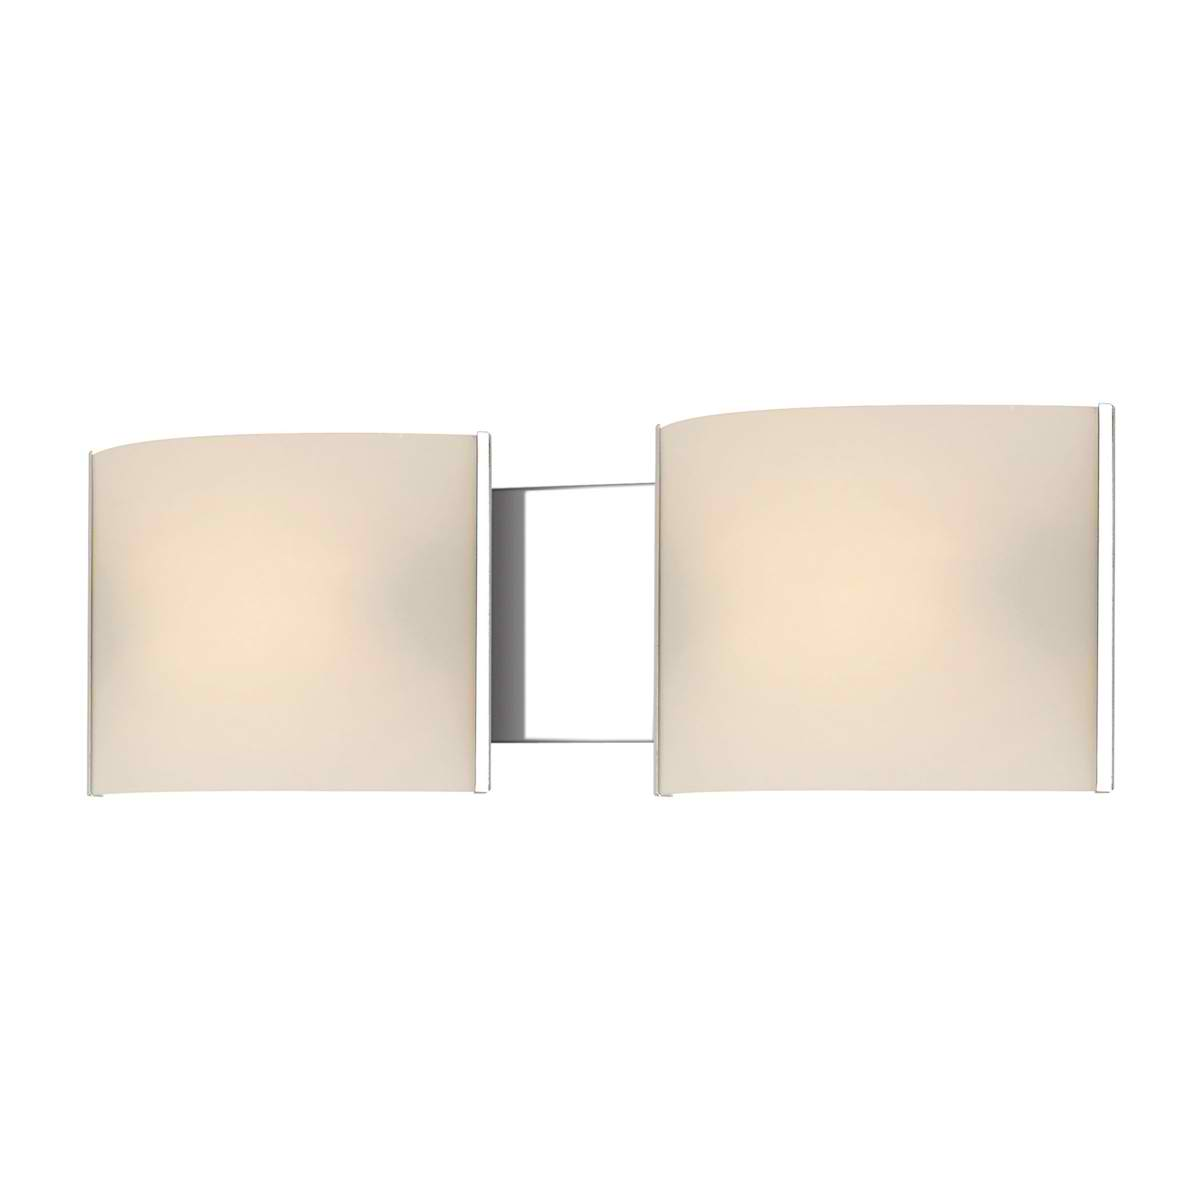 Pannelli Vanity - 2 Light with Lamps. White Opal Glass / Chrome Finish